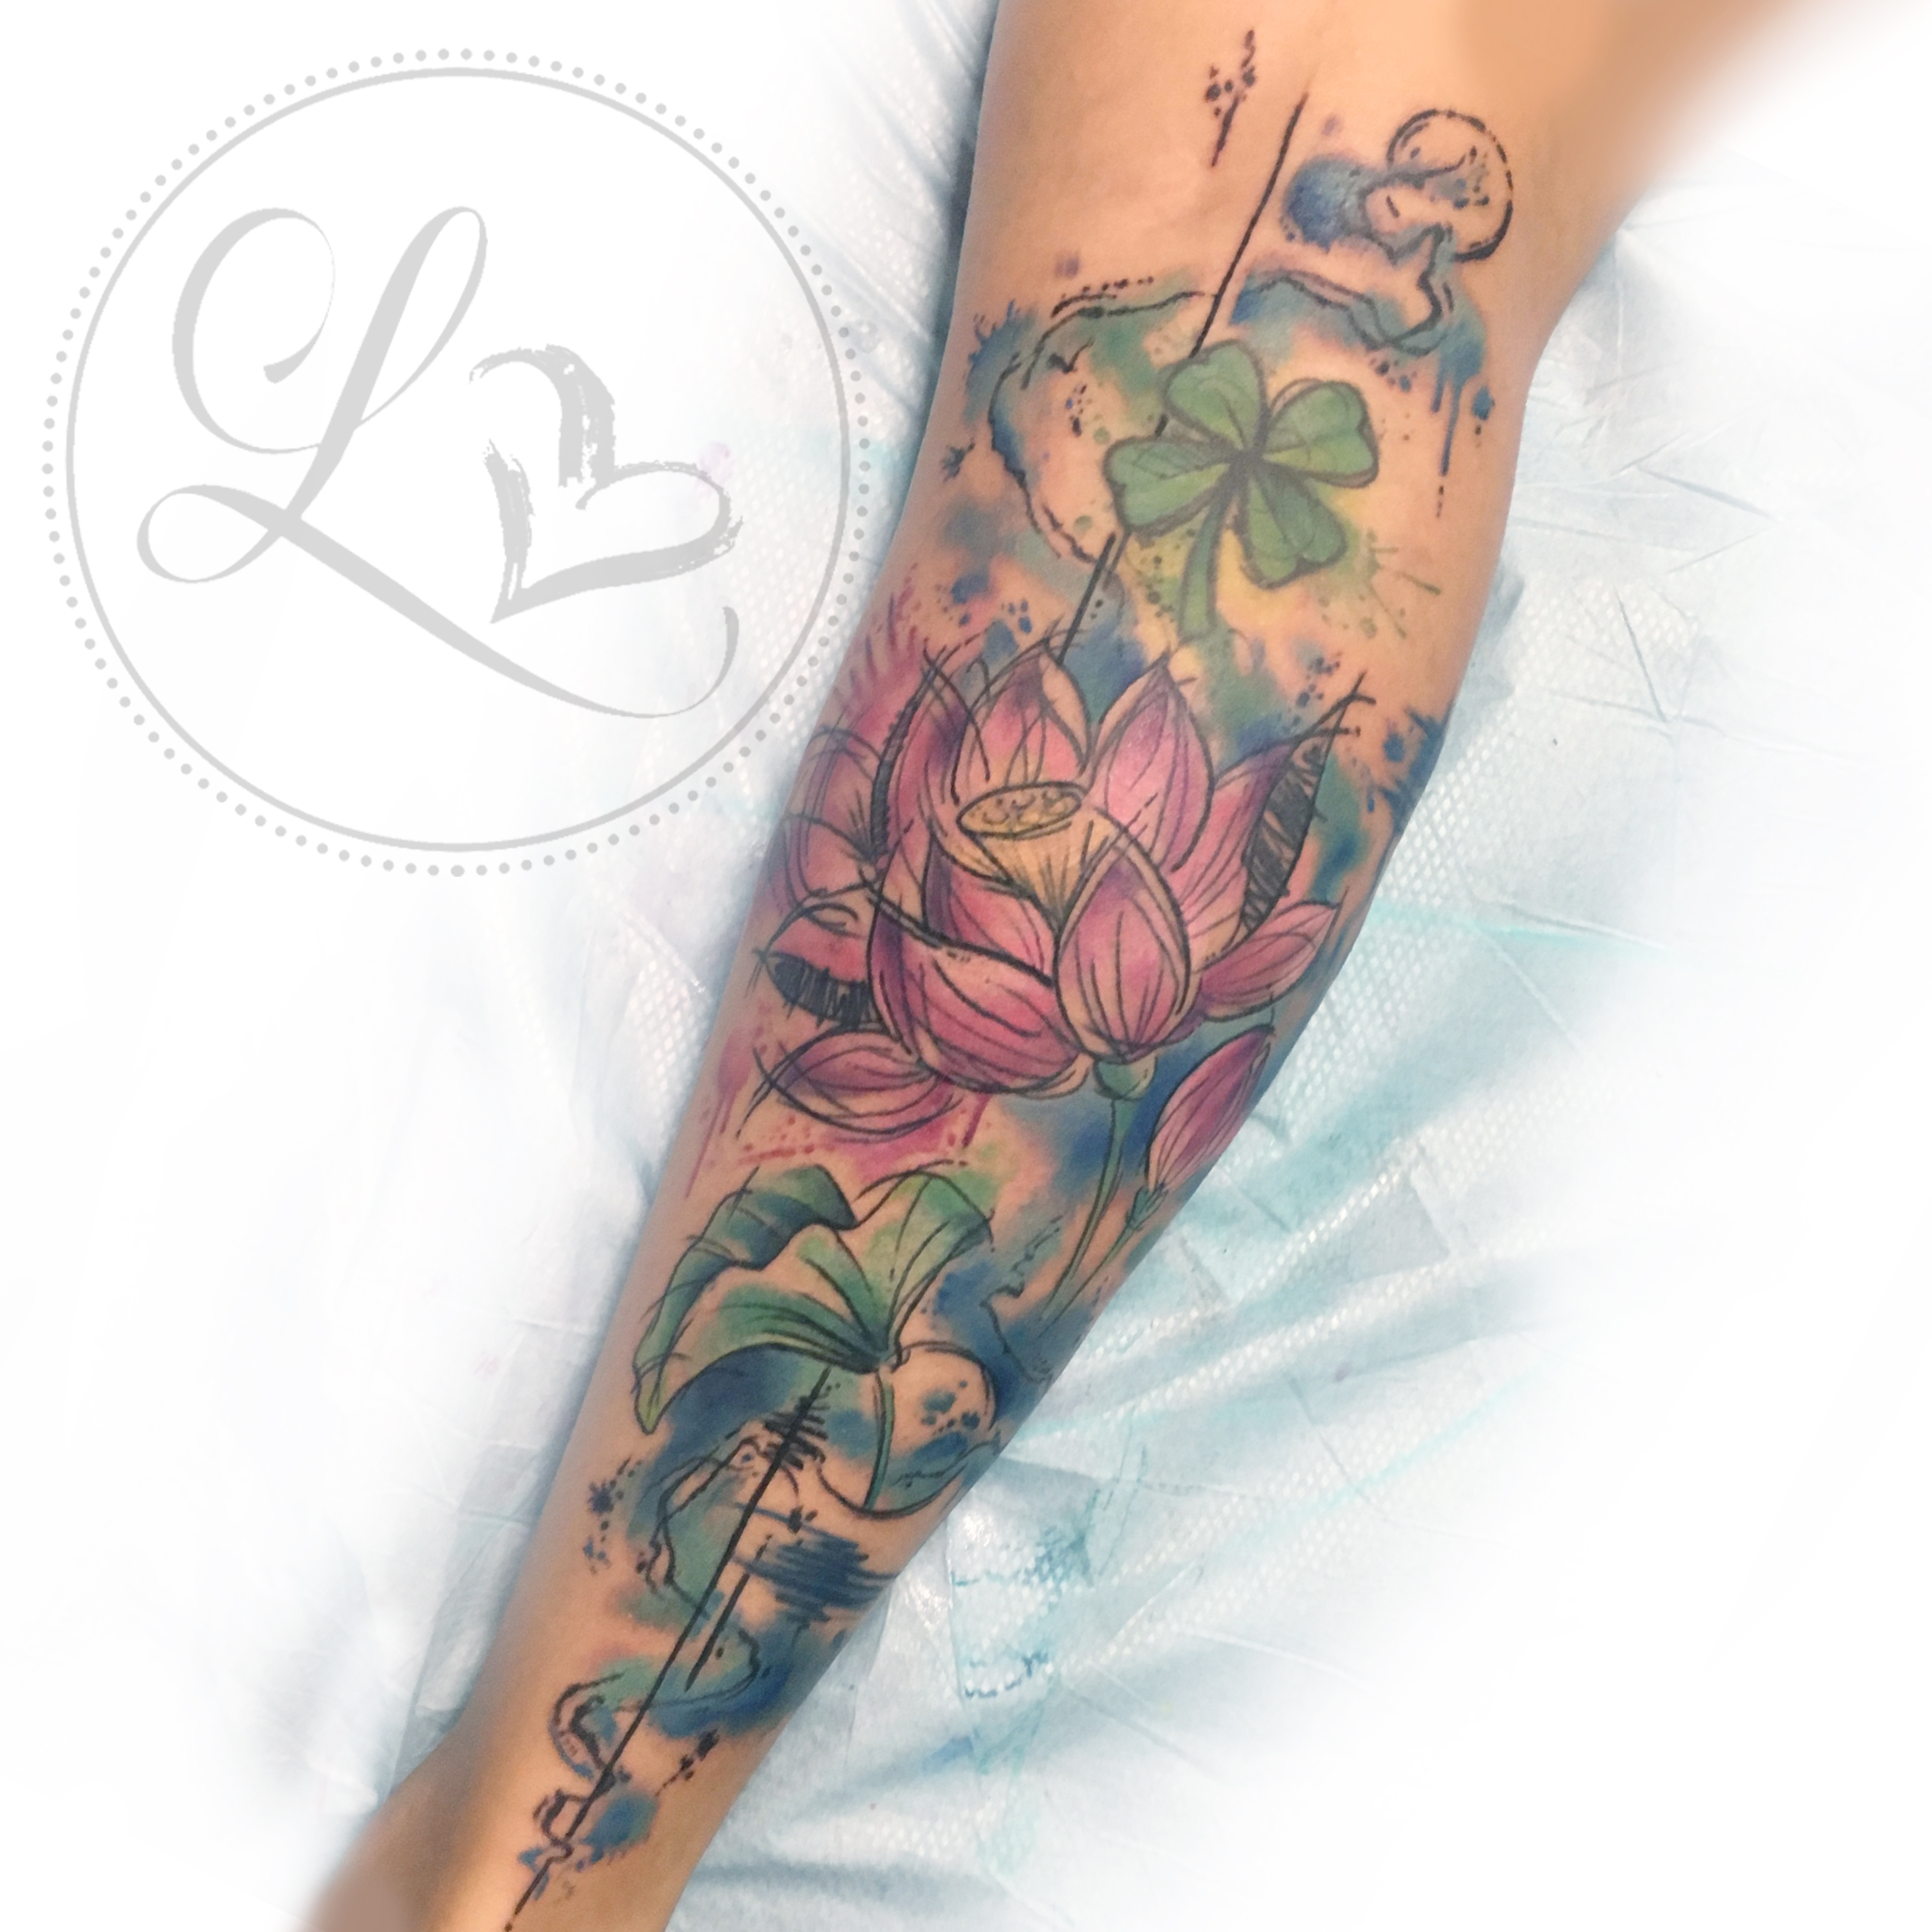 Watercolor style leg half-sleeve tattoo of lotus flowere and lily pads